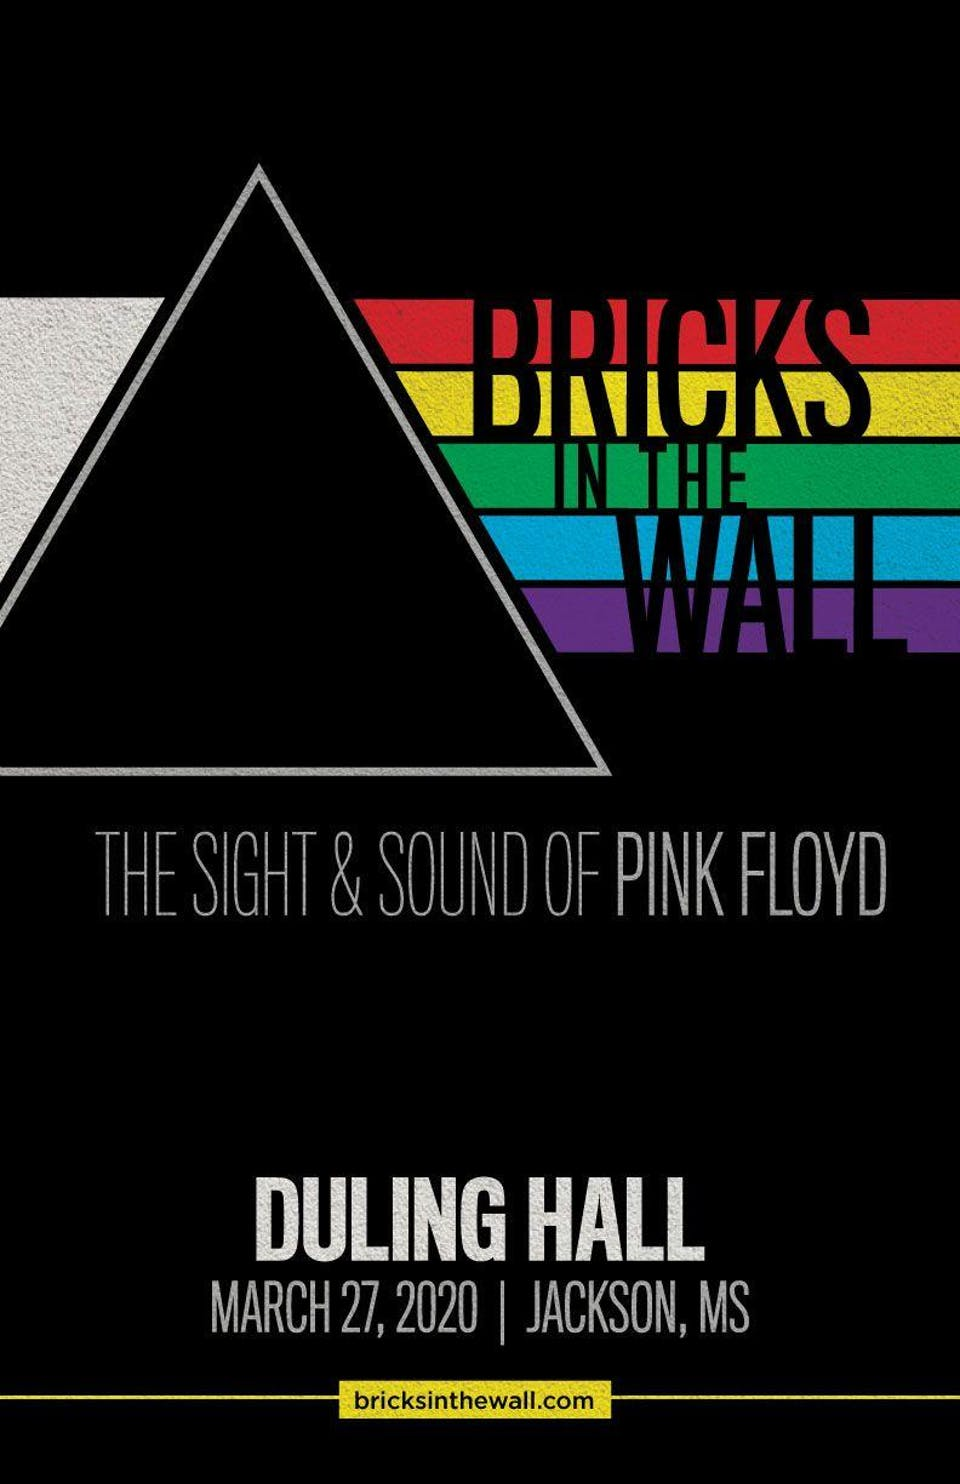 Bricks in the Wall - The Sight and Sound of Pink Floyd (Jackson, MS)